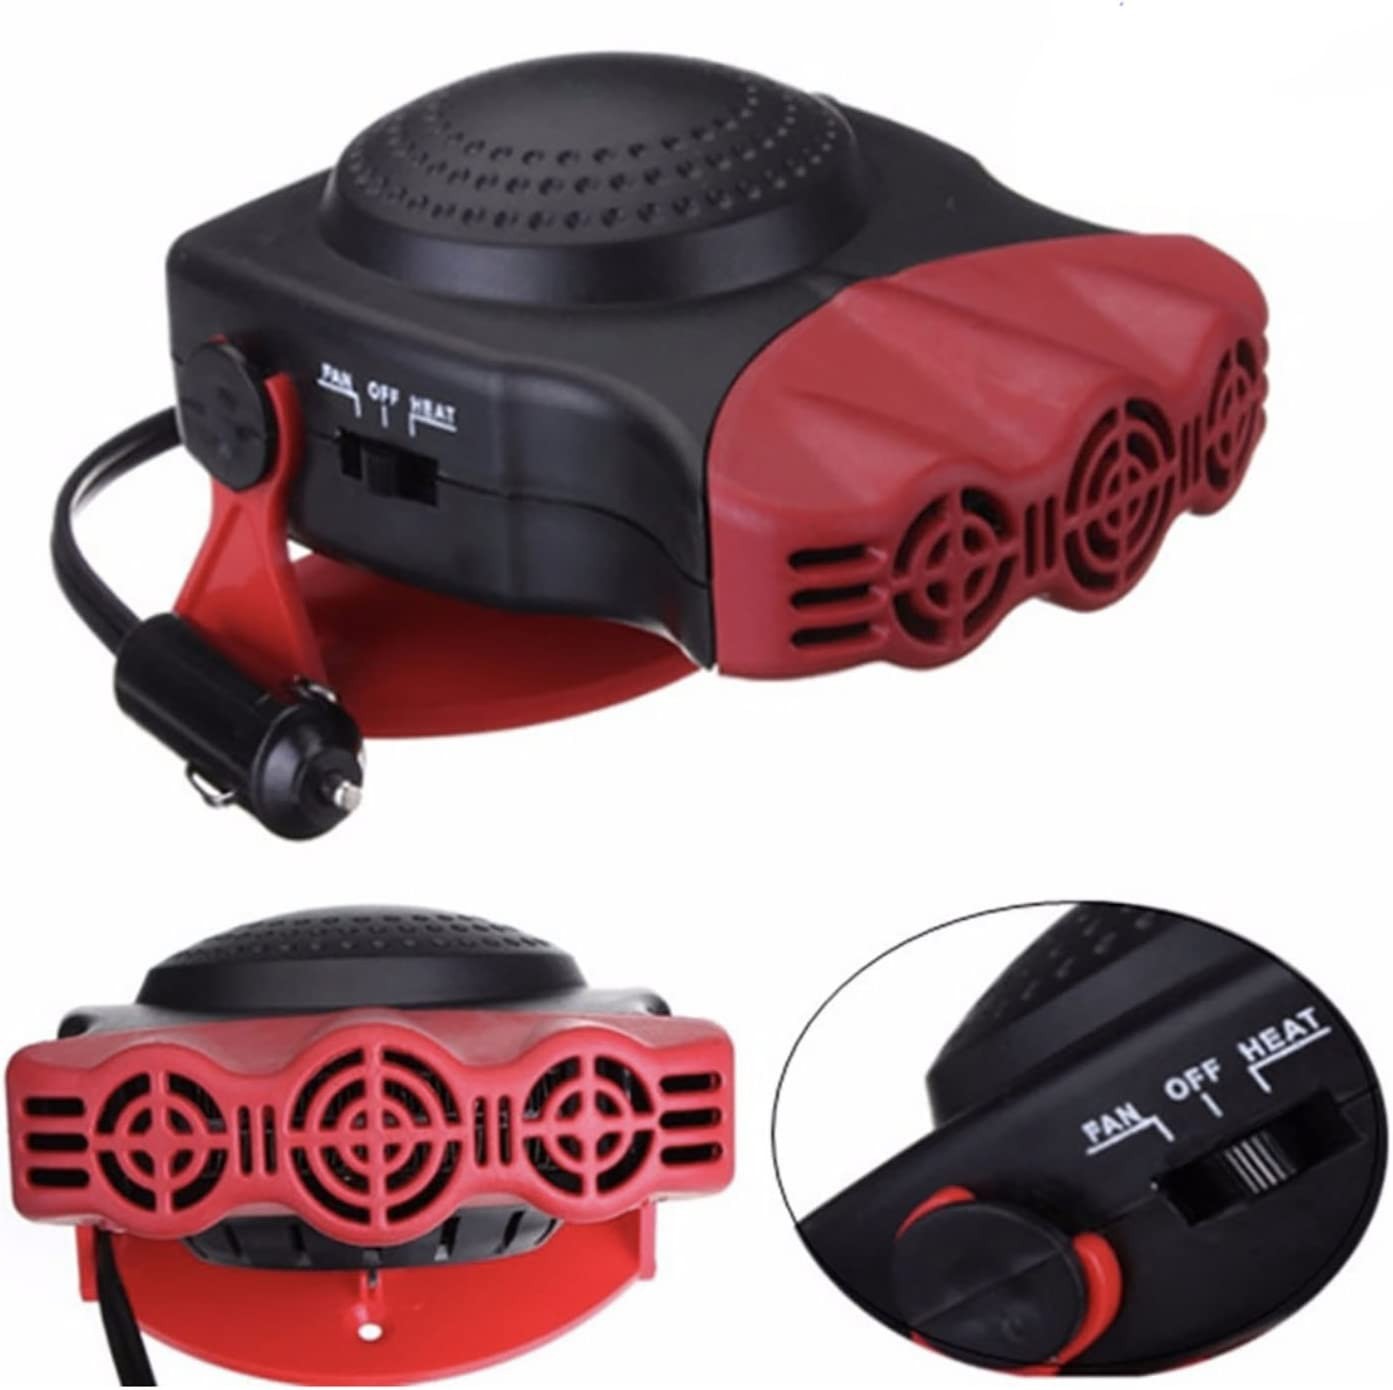 Yosooo Car Heater 24 500W Full Automatic Low Noise Low Consumption Car Heater Portable Purifies Air Heating Defrost Defogger